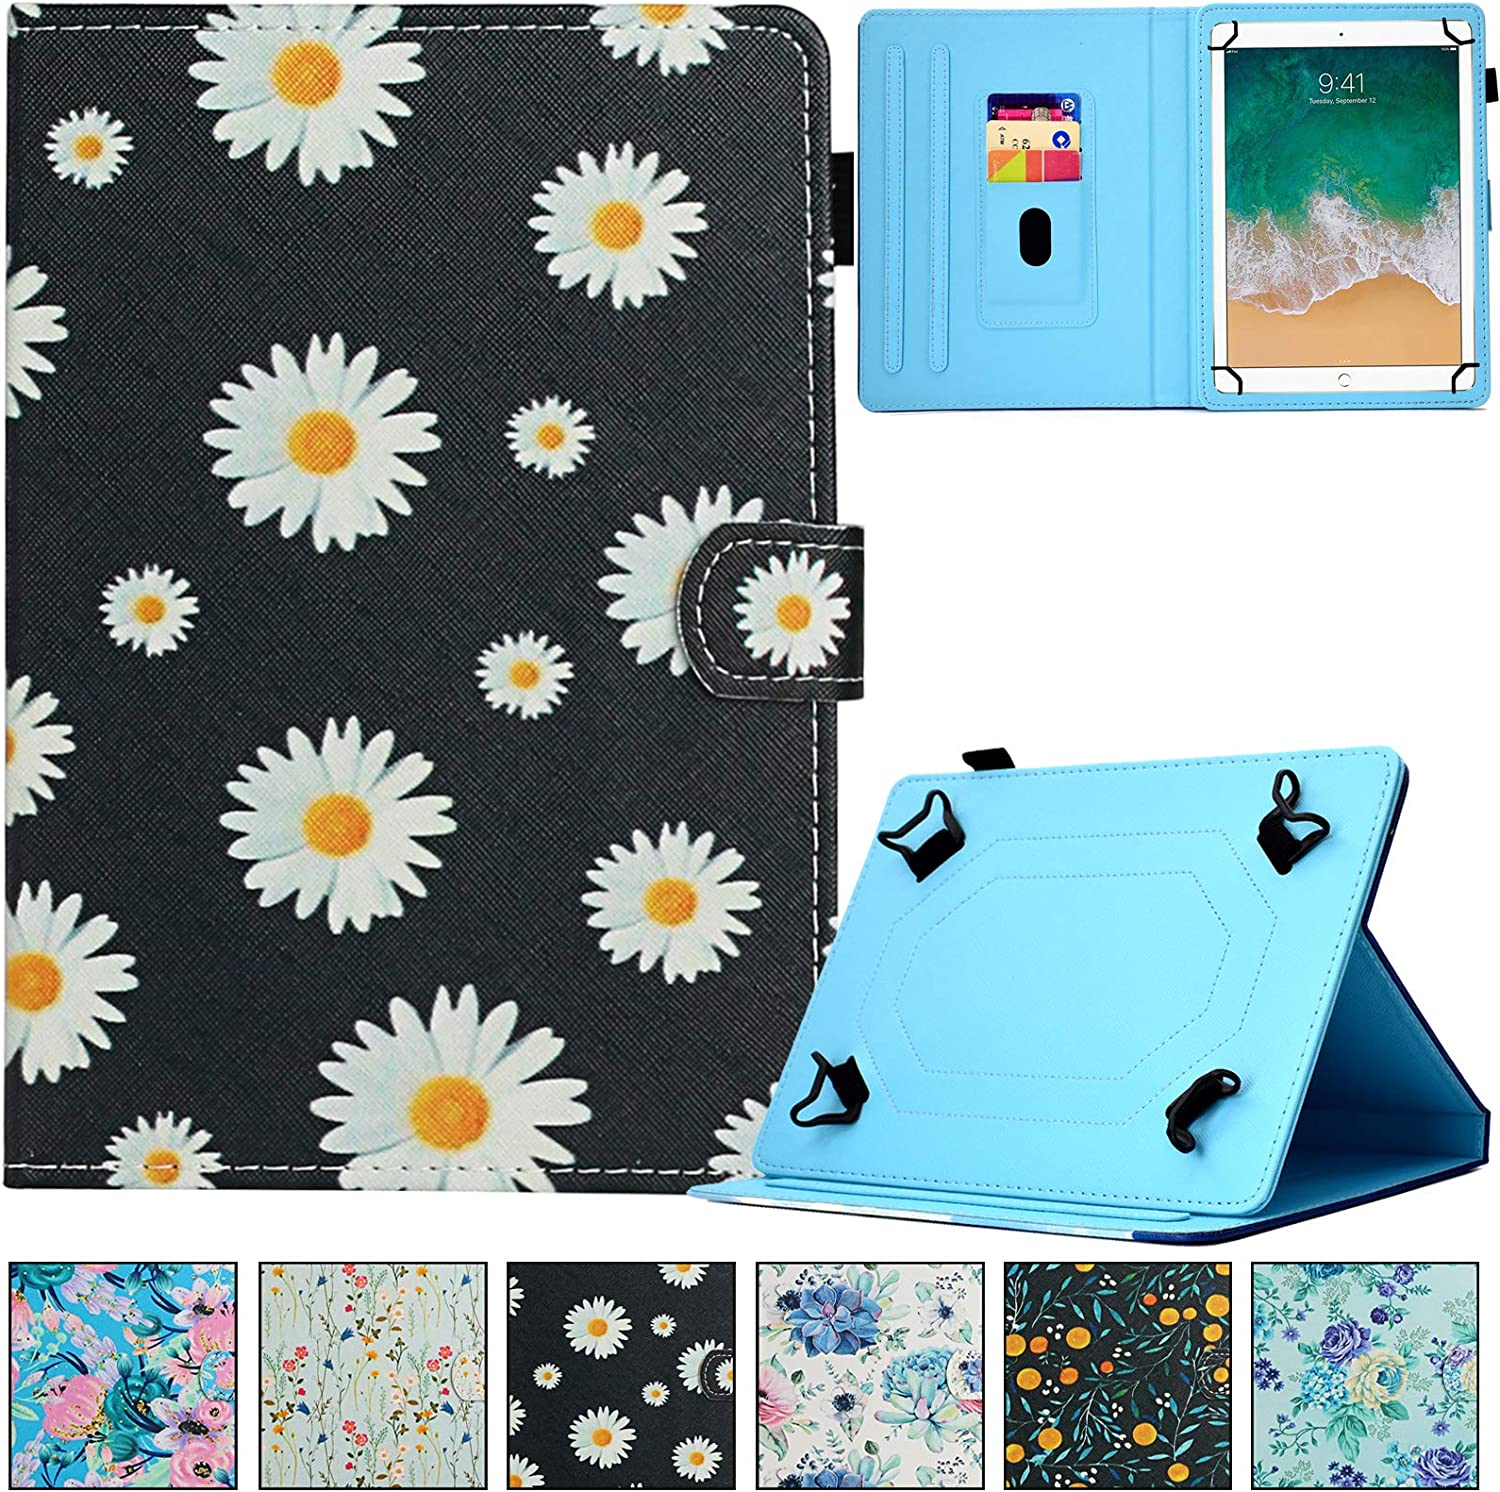 Universal Case for 9.0-10.5 inch Tablet,REASUN Slim Folio PU Leather Card Slot Wallet Shell for Apple/Samsung/Kindle/Huawei/Lenovo/Android/Dragon Touch 9.7 9.6 10.1 10.5 Inch Tablet (Daisy)